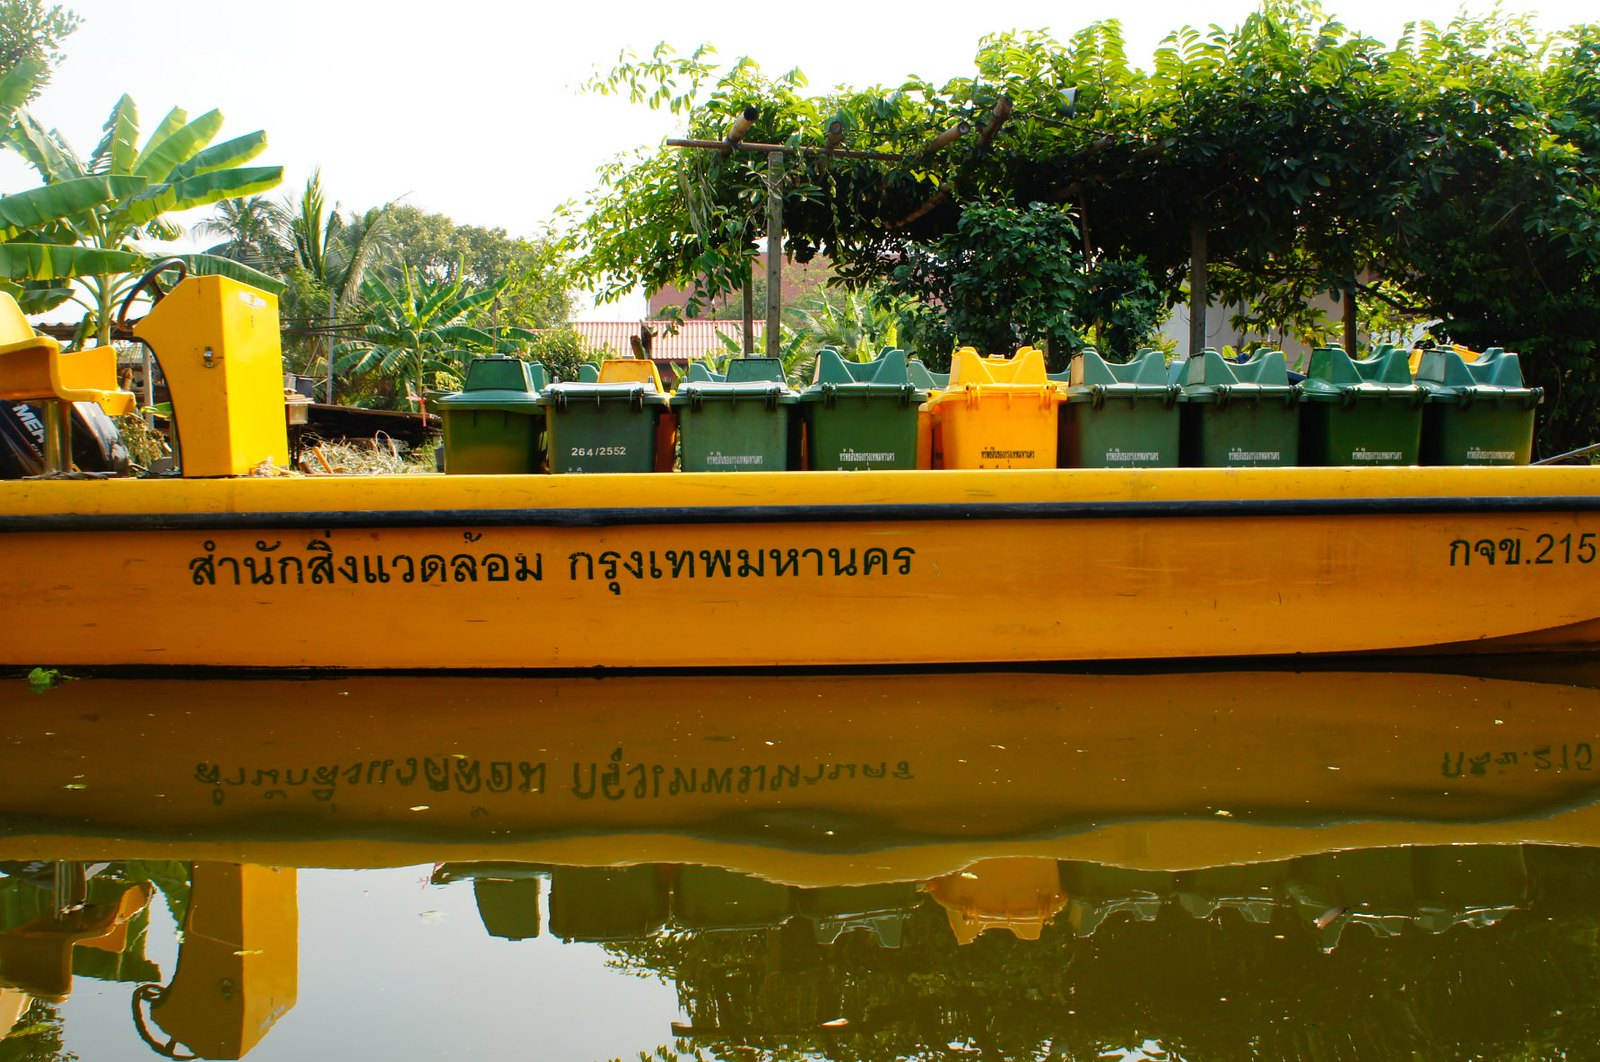 Floating rubbish collection